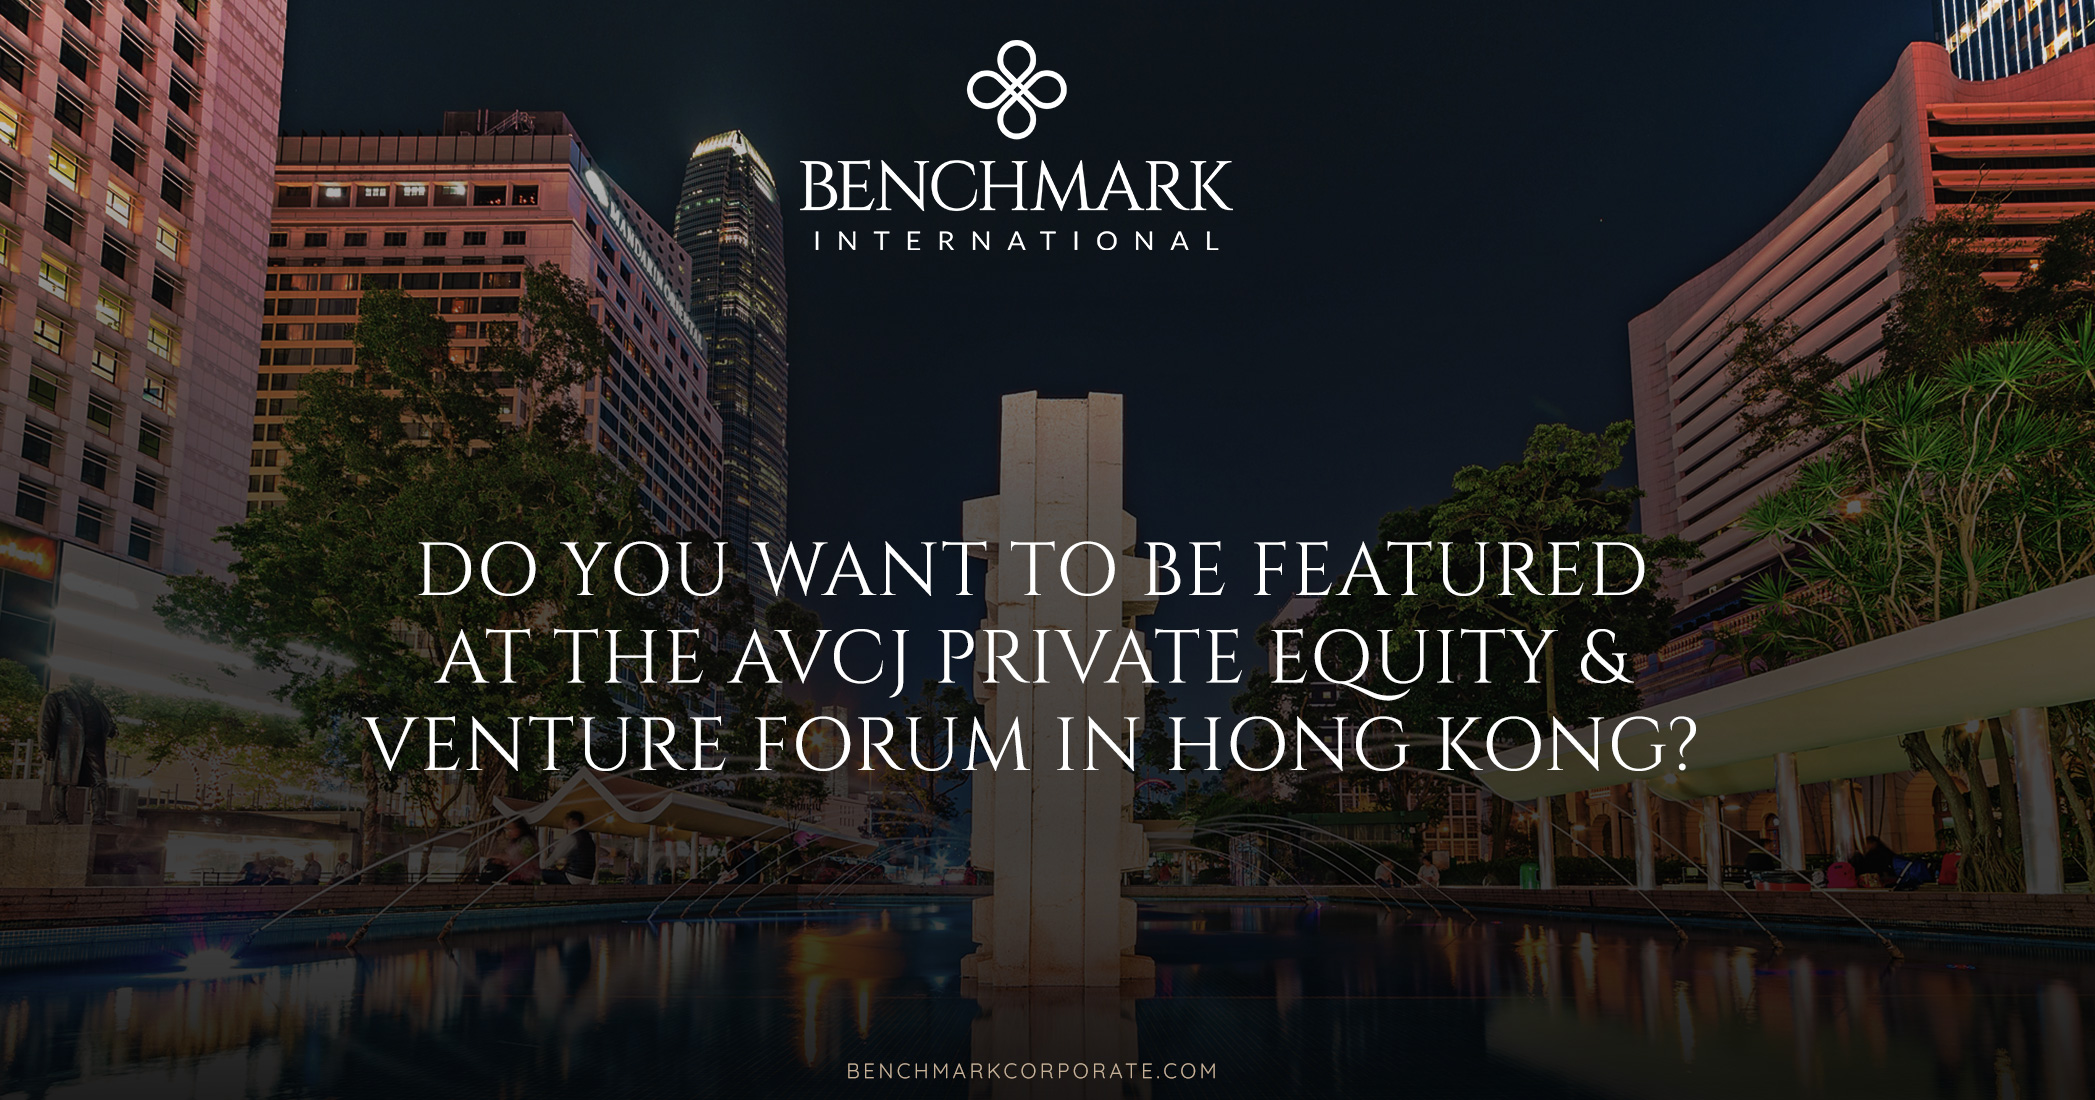 Benchmark International Blog